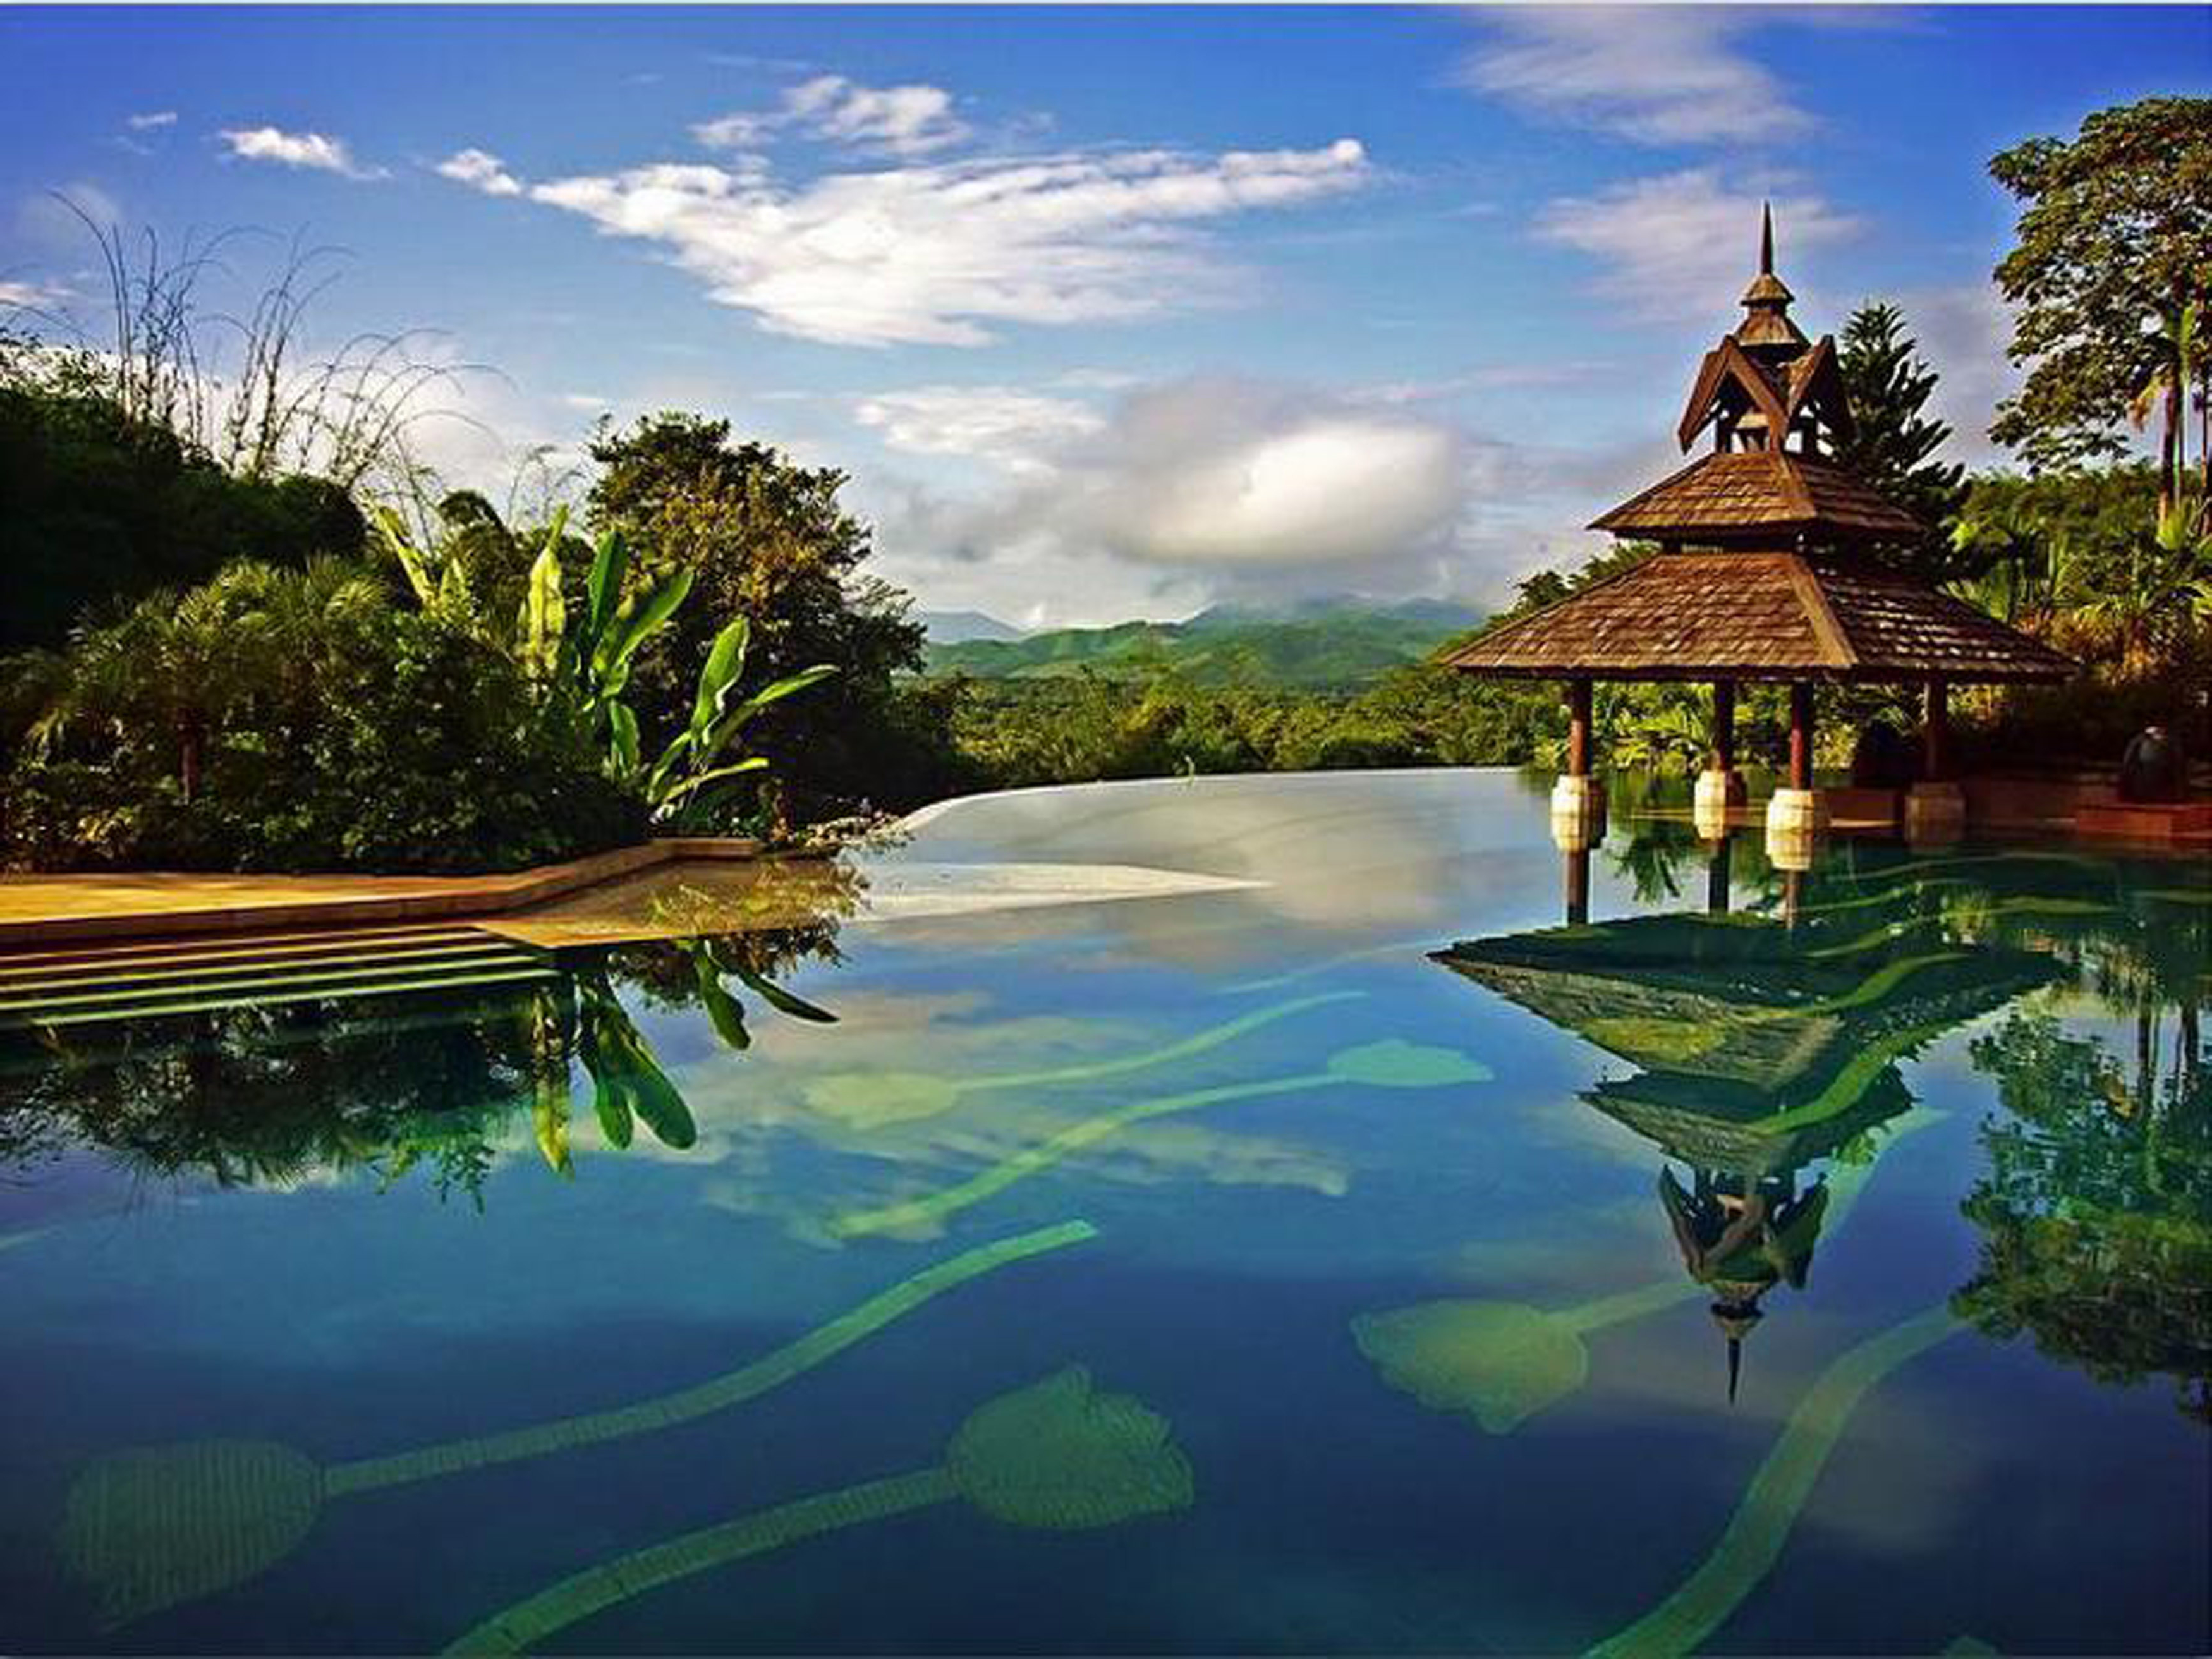 Amazing Pool Hotel With Infinity Pool Hotels With Infinity Pools (Image 20 of 28)